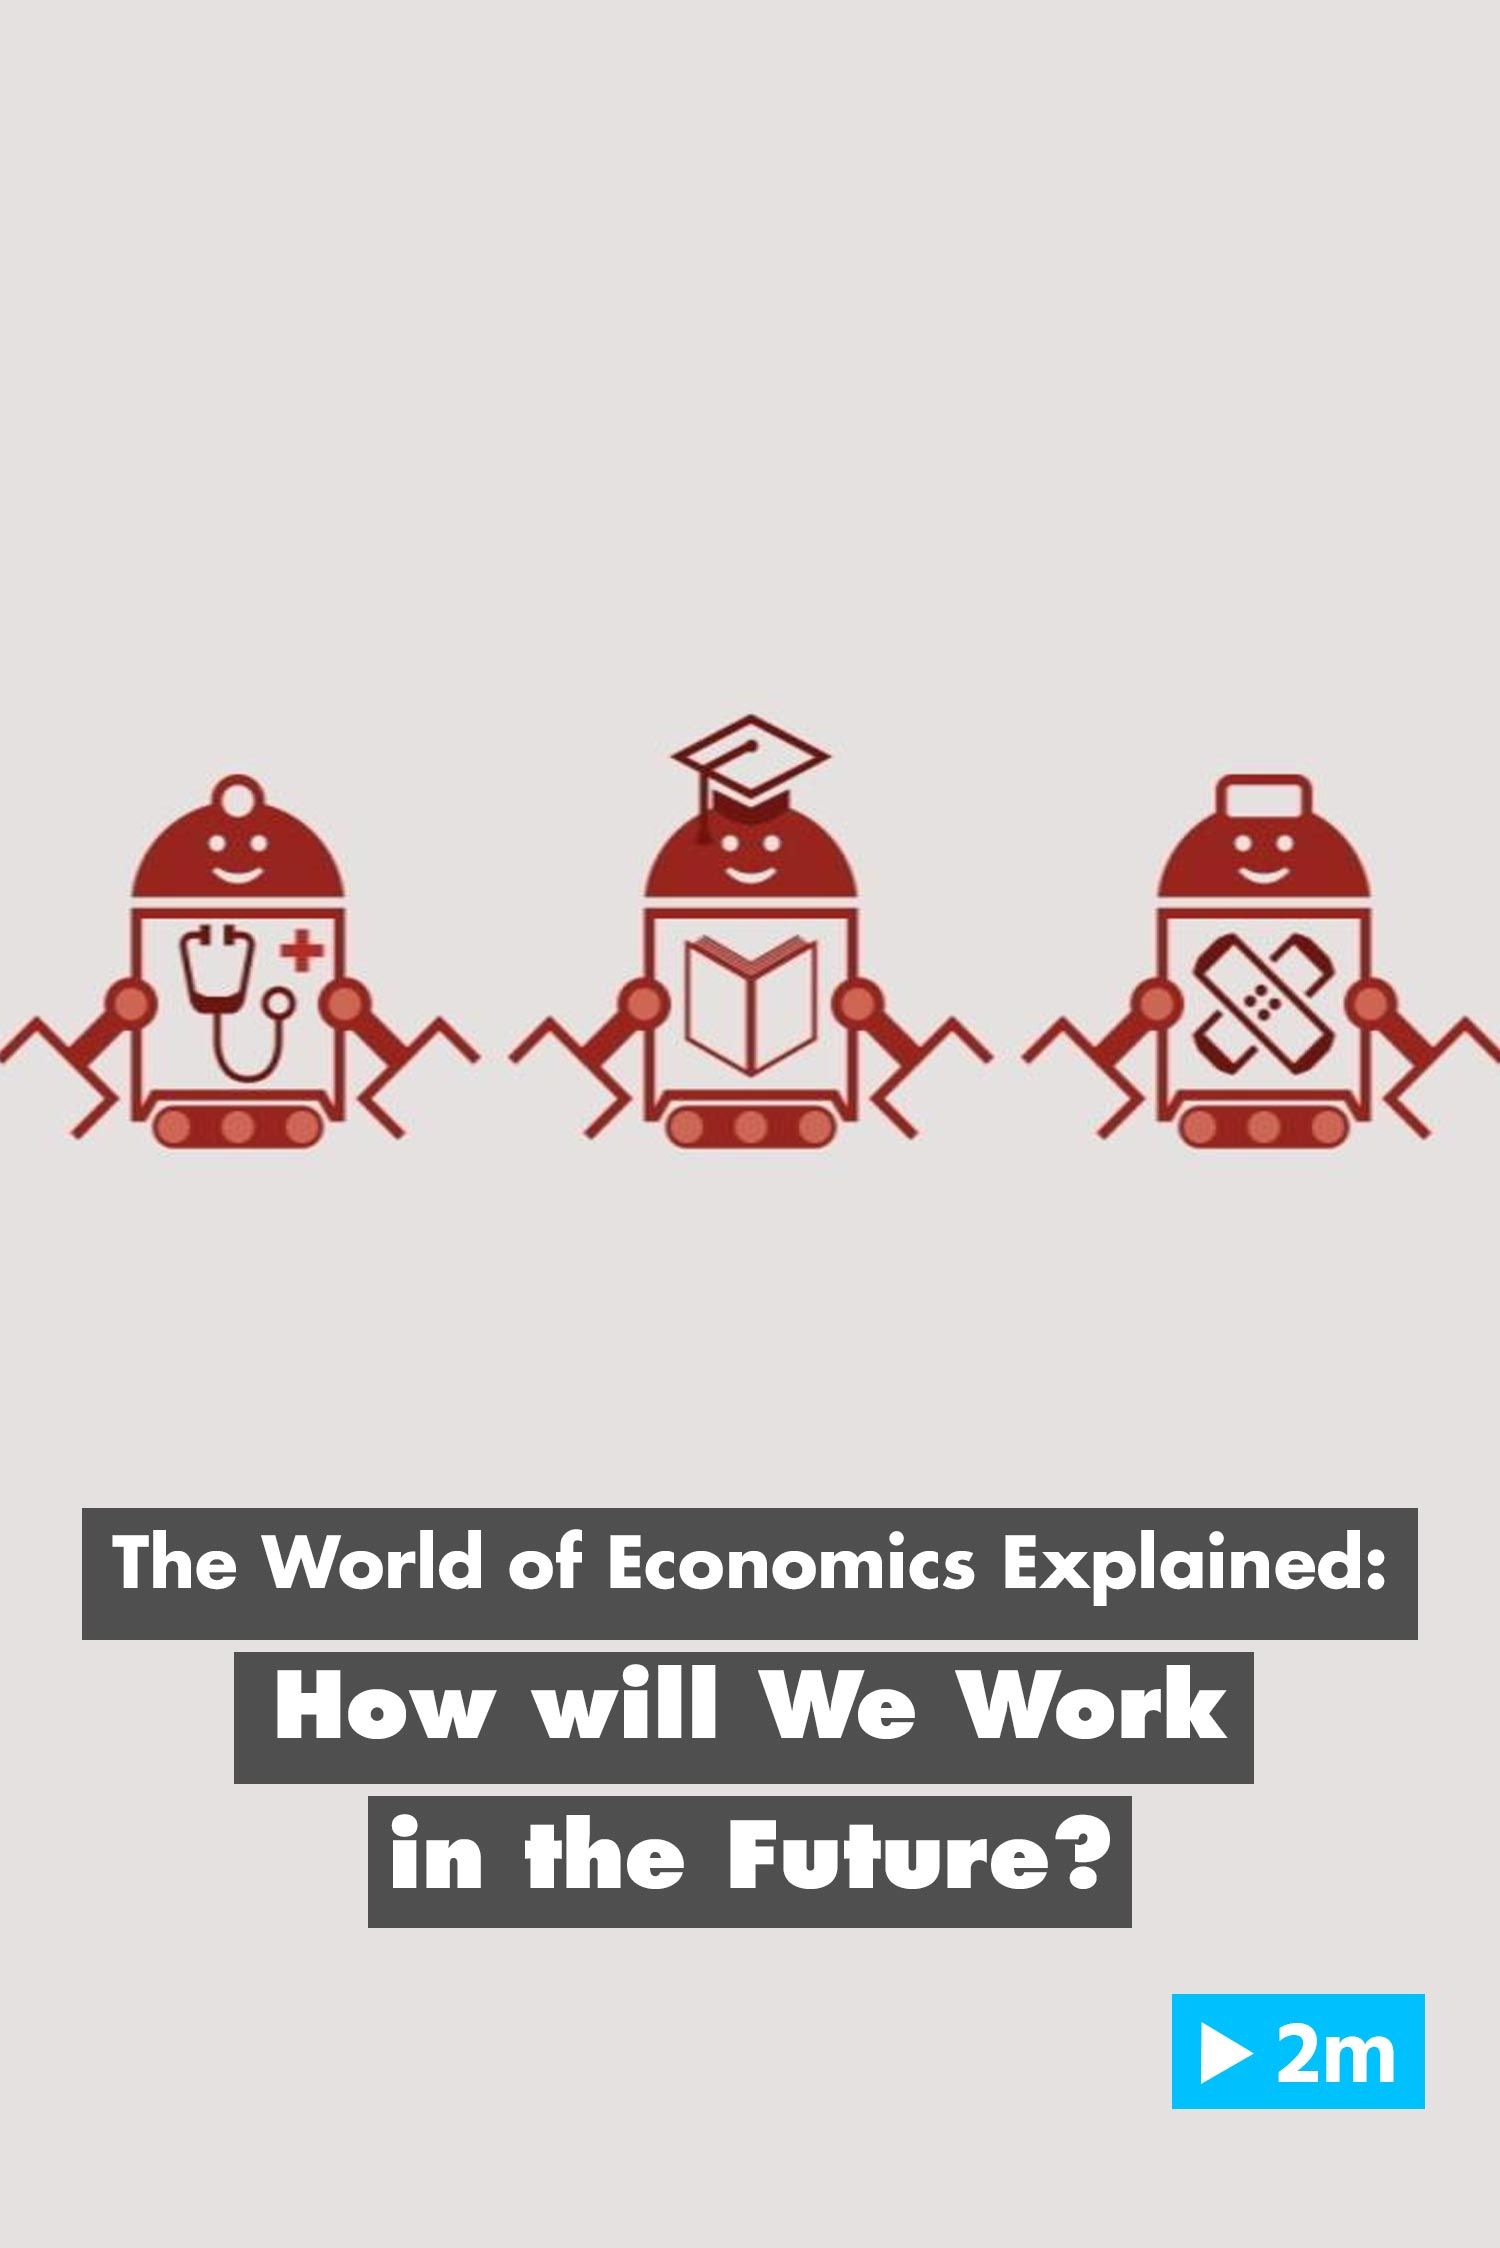 The World of Economics Explained: How will we work in the Future?